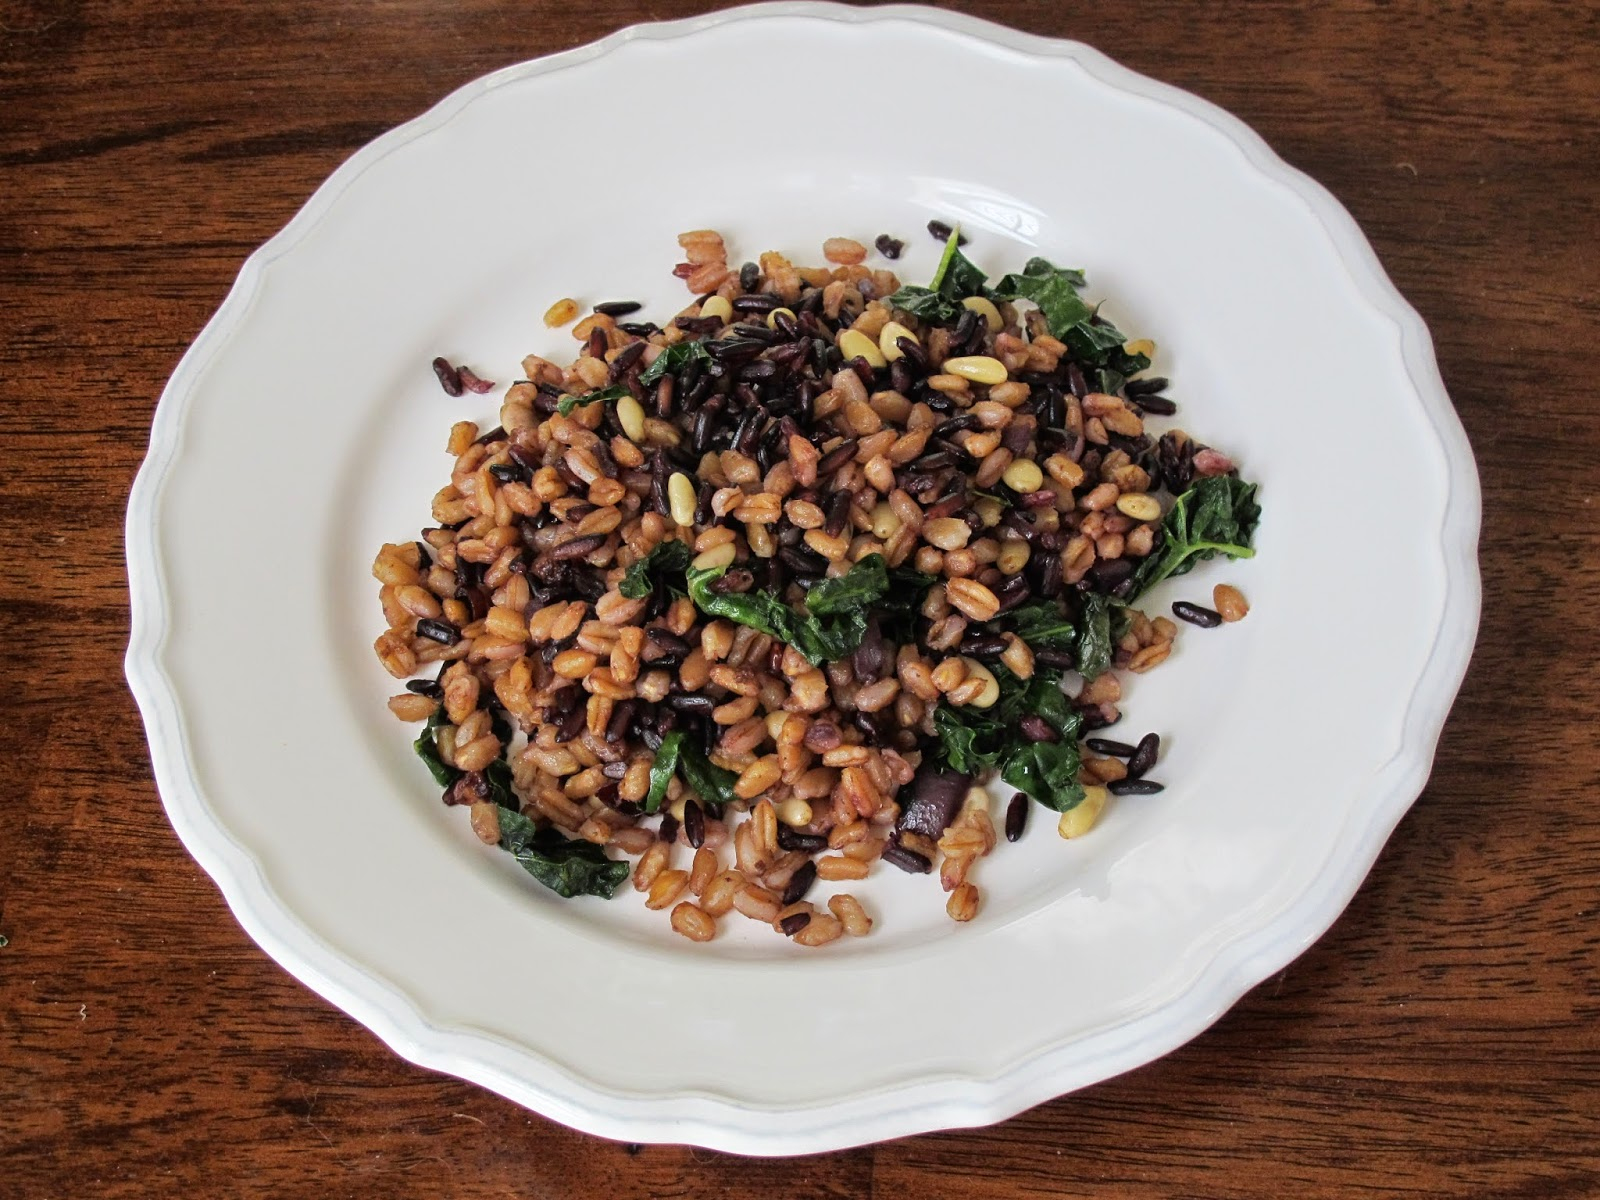 Farro Black Rice with Kale and Pinenuts